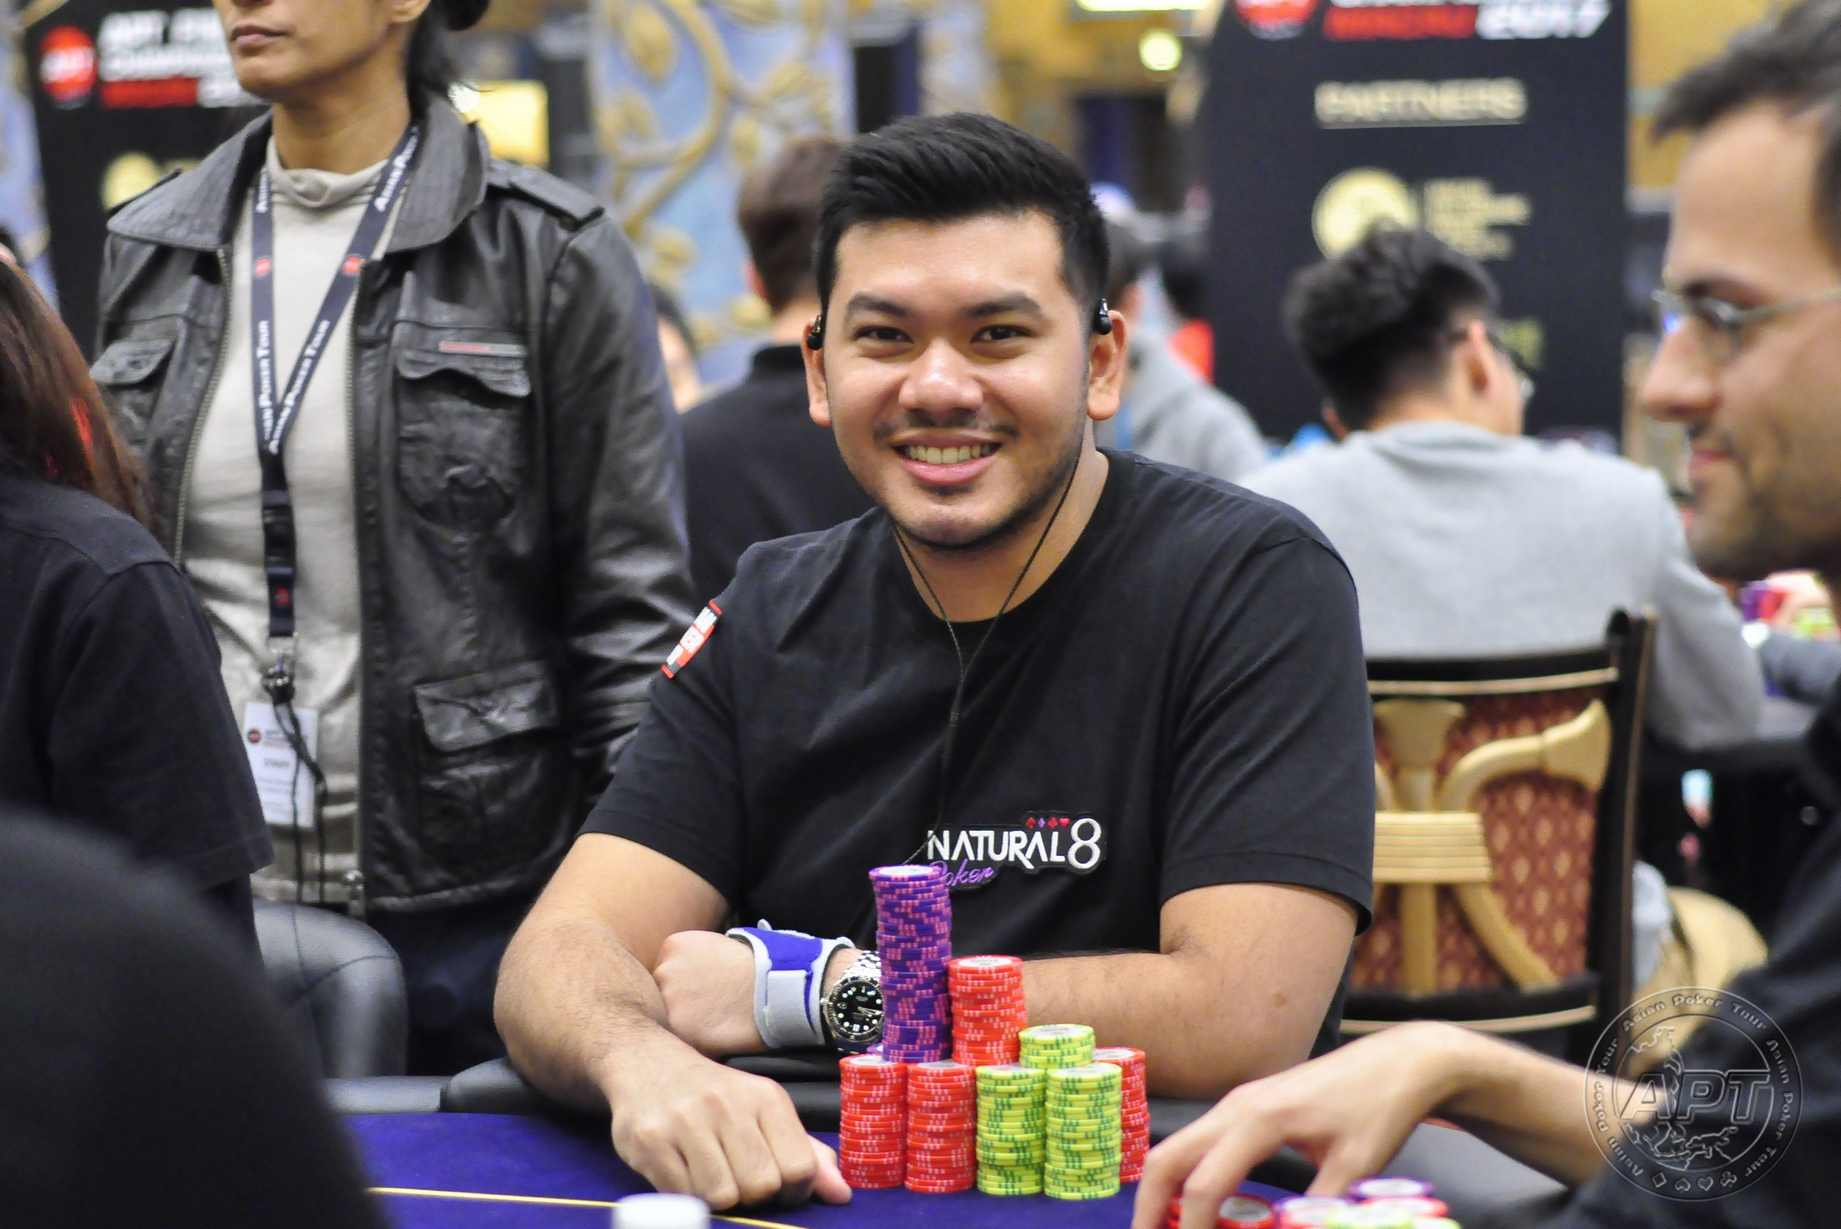 Michael Soyza on career-best run on Natural8